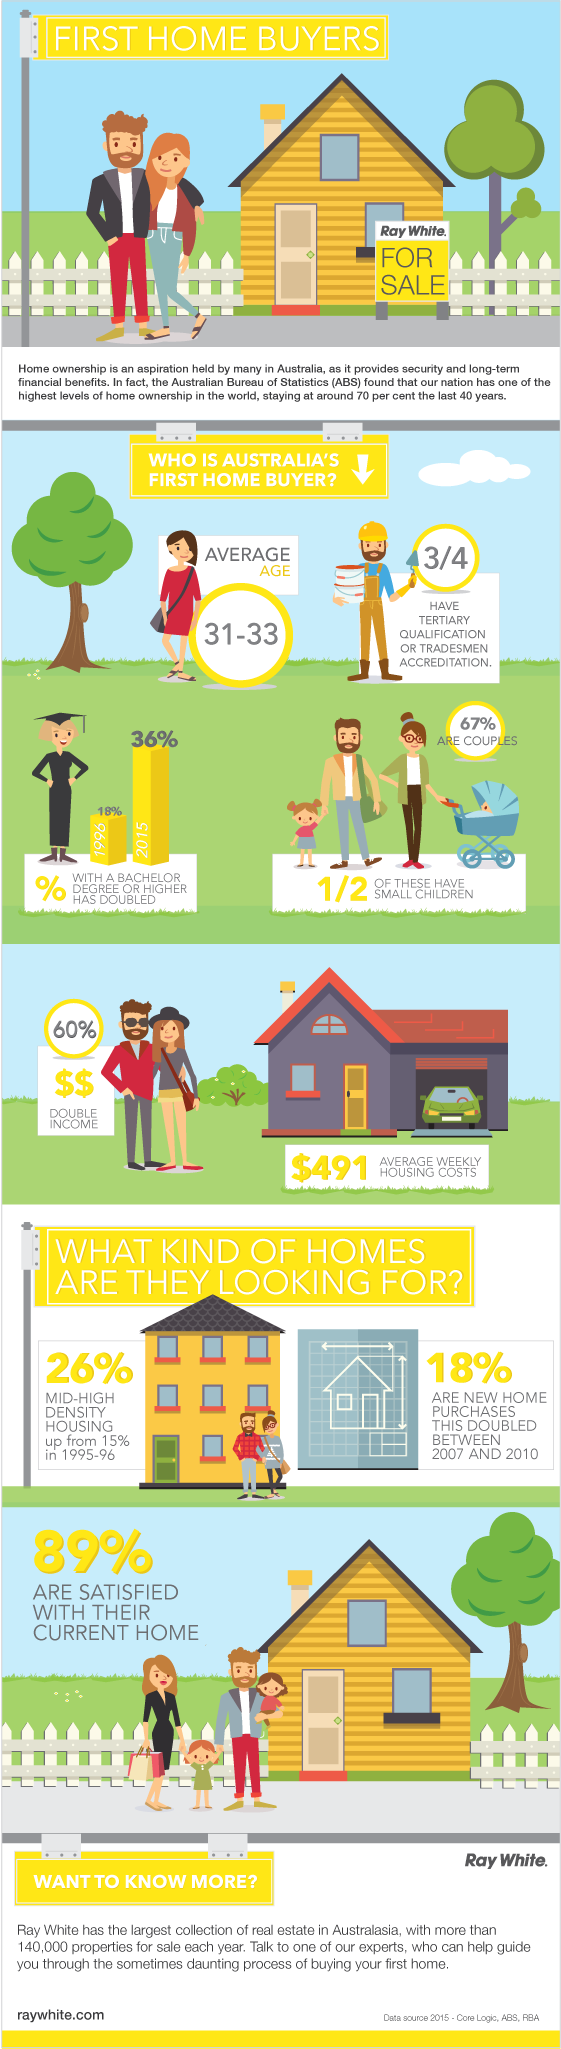 Infographic first home buyers